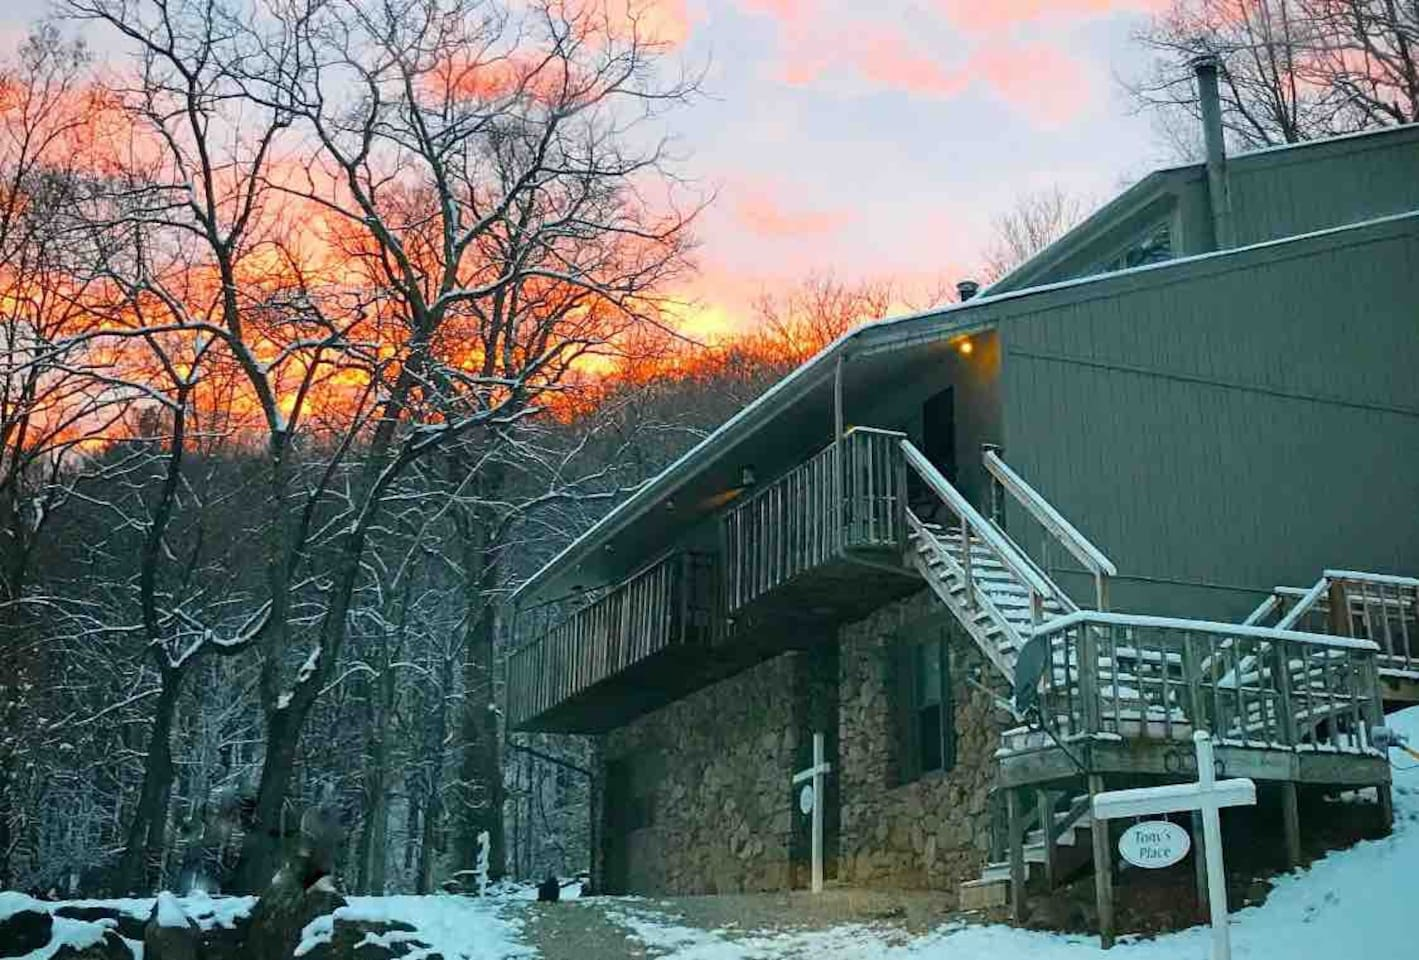 Tony's has a nice front porch for enjoying your morning coffee and sunrise while listening to the wind in the trees and the Tye River rushing just down the hill.